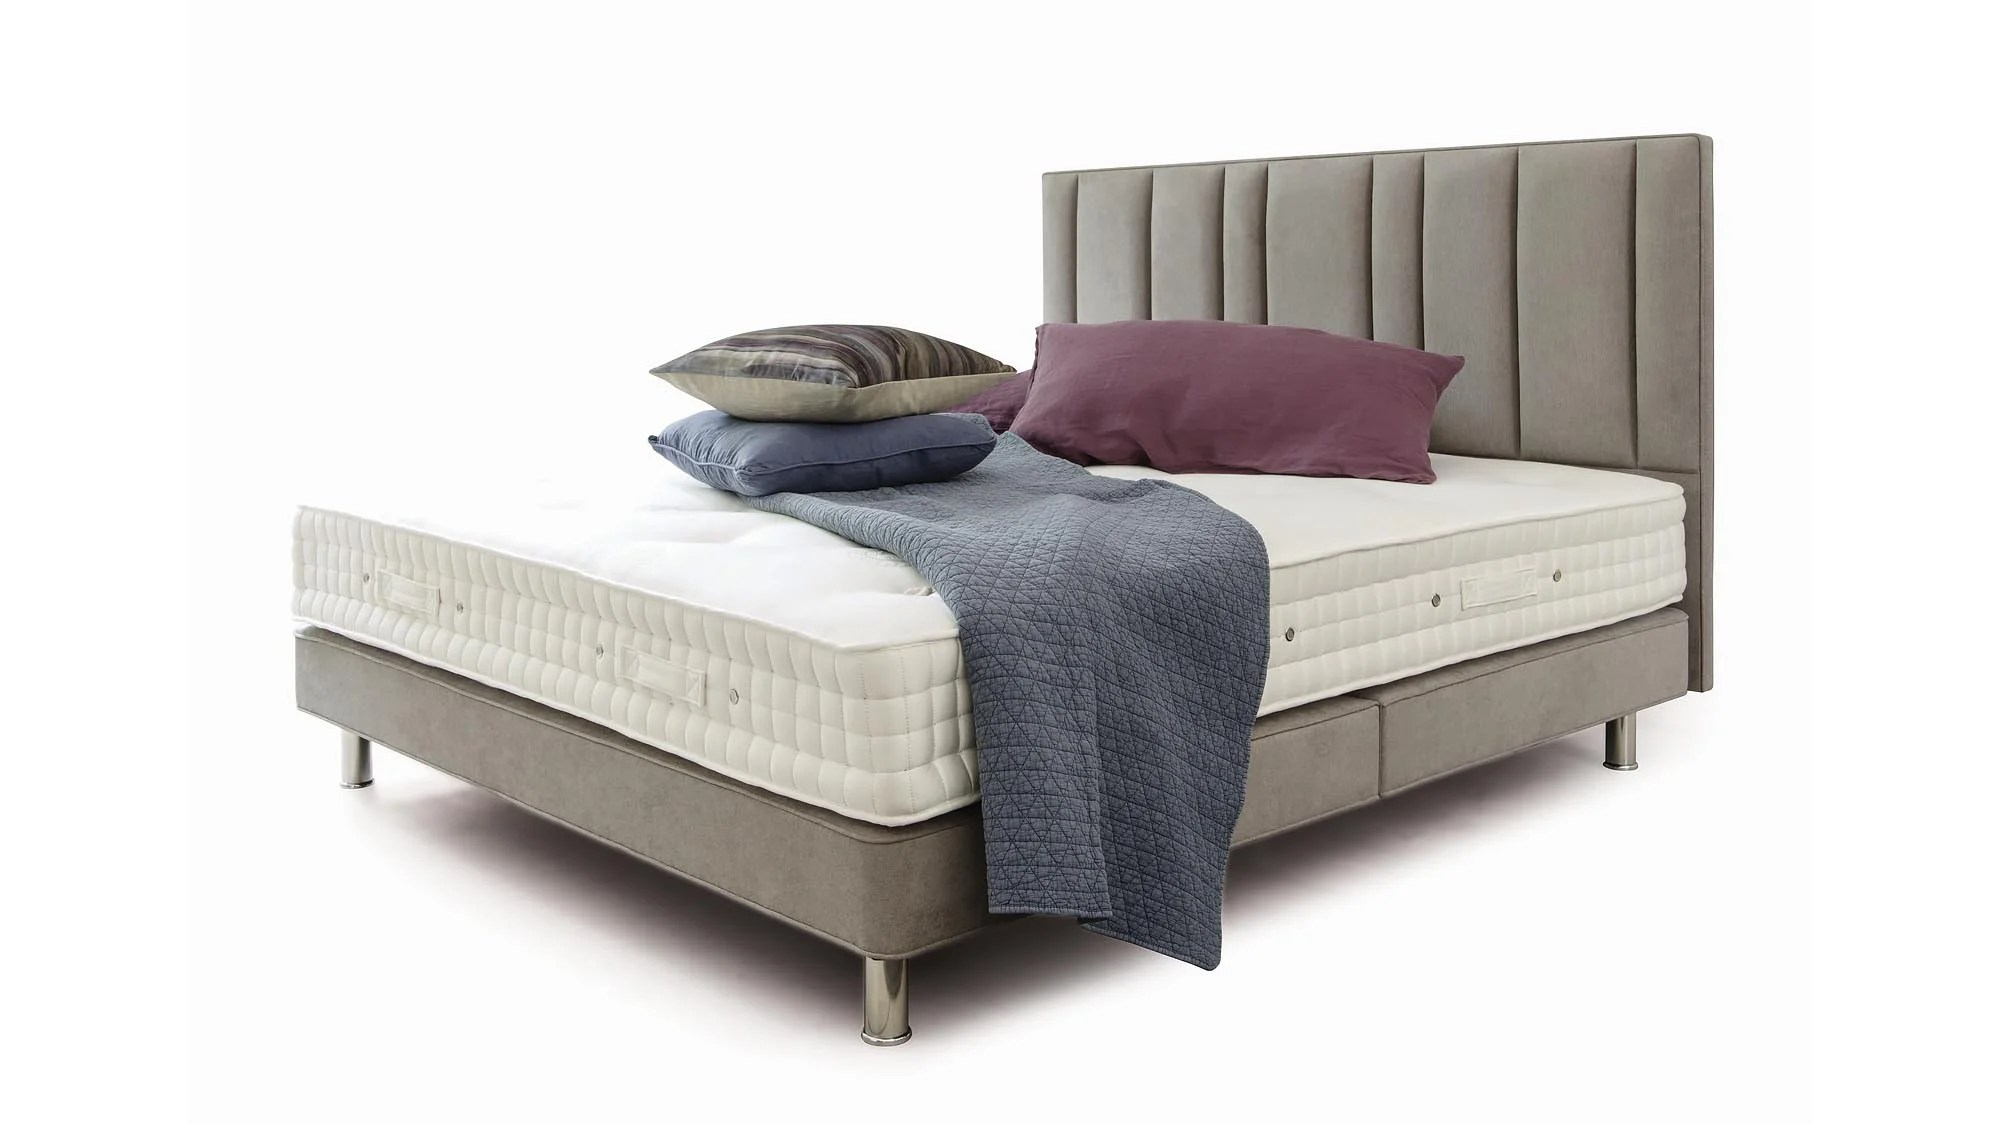 Hovag Mattress Best Mattresses For A Bad Back Banish Back Pain With The Right